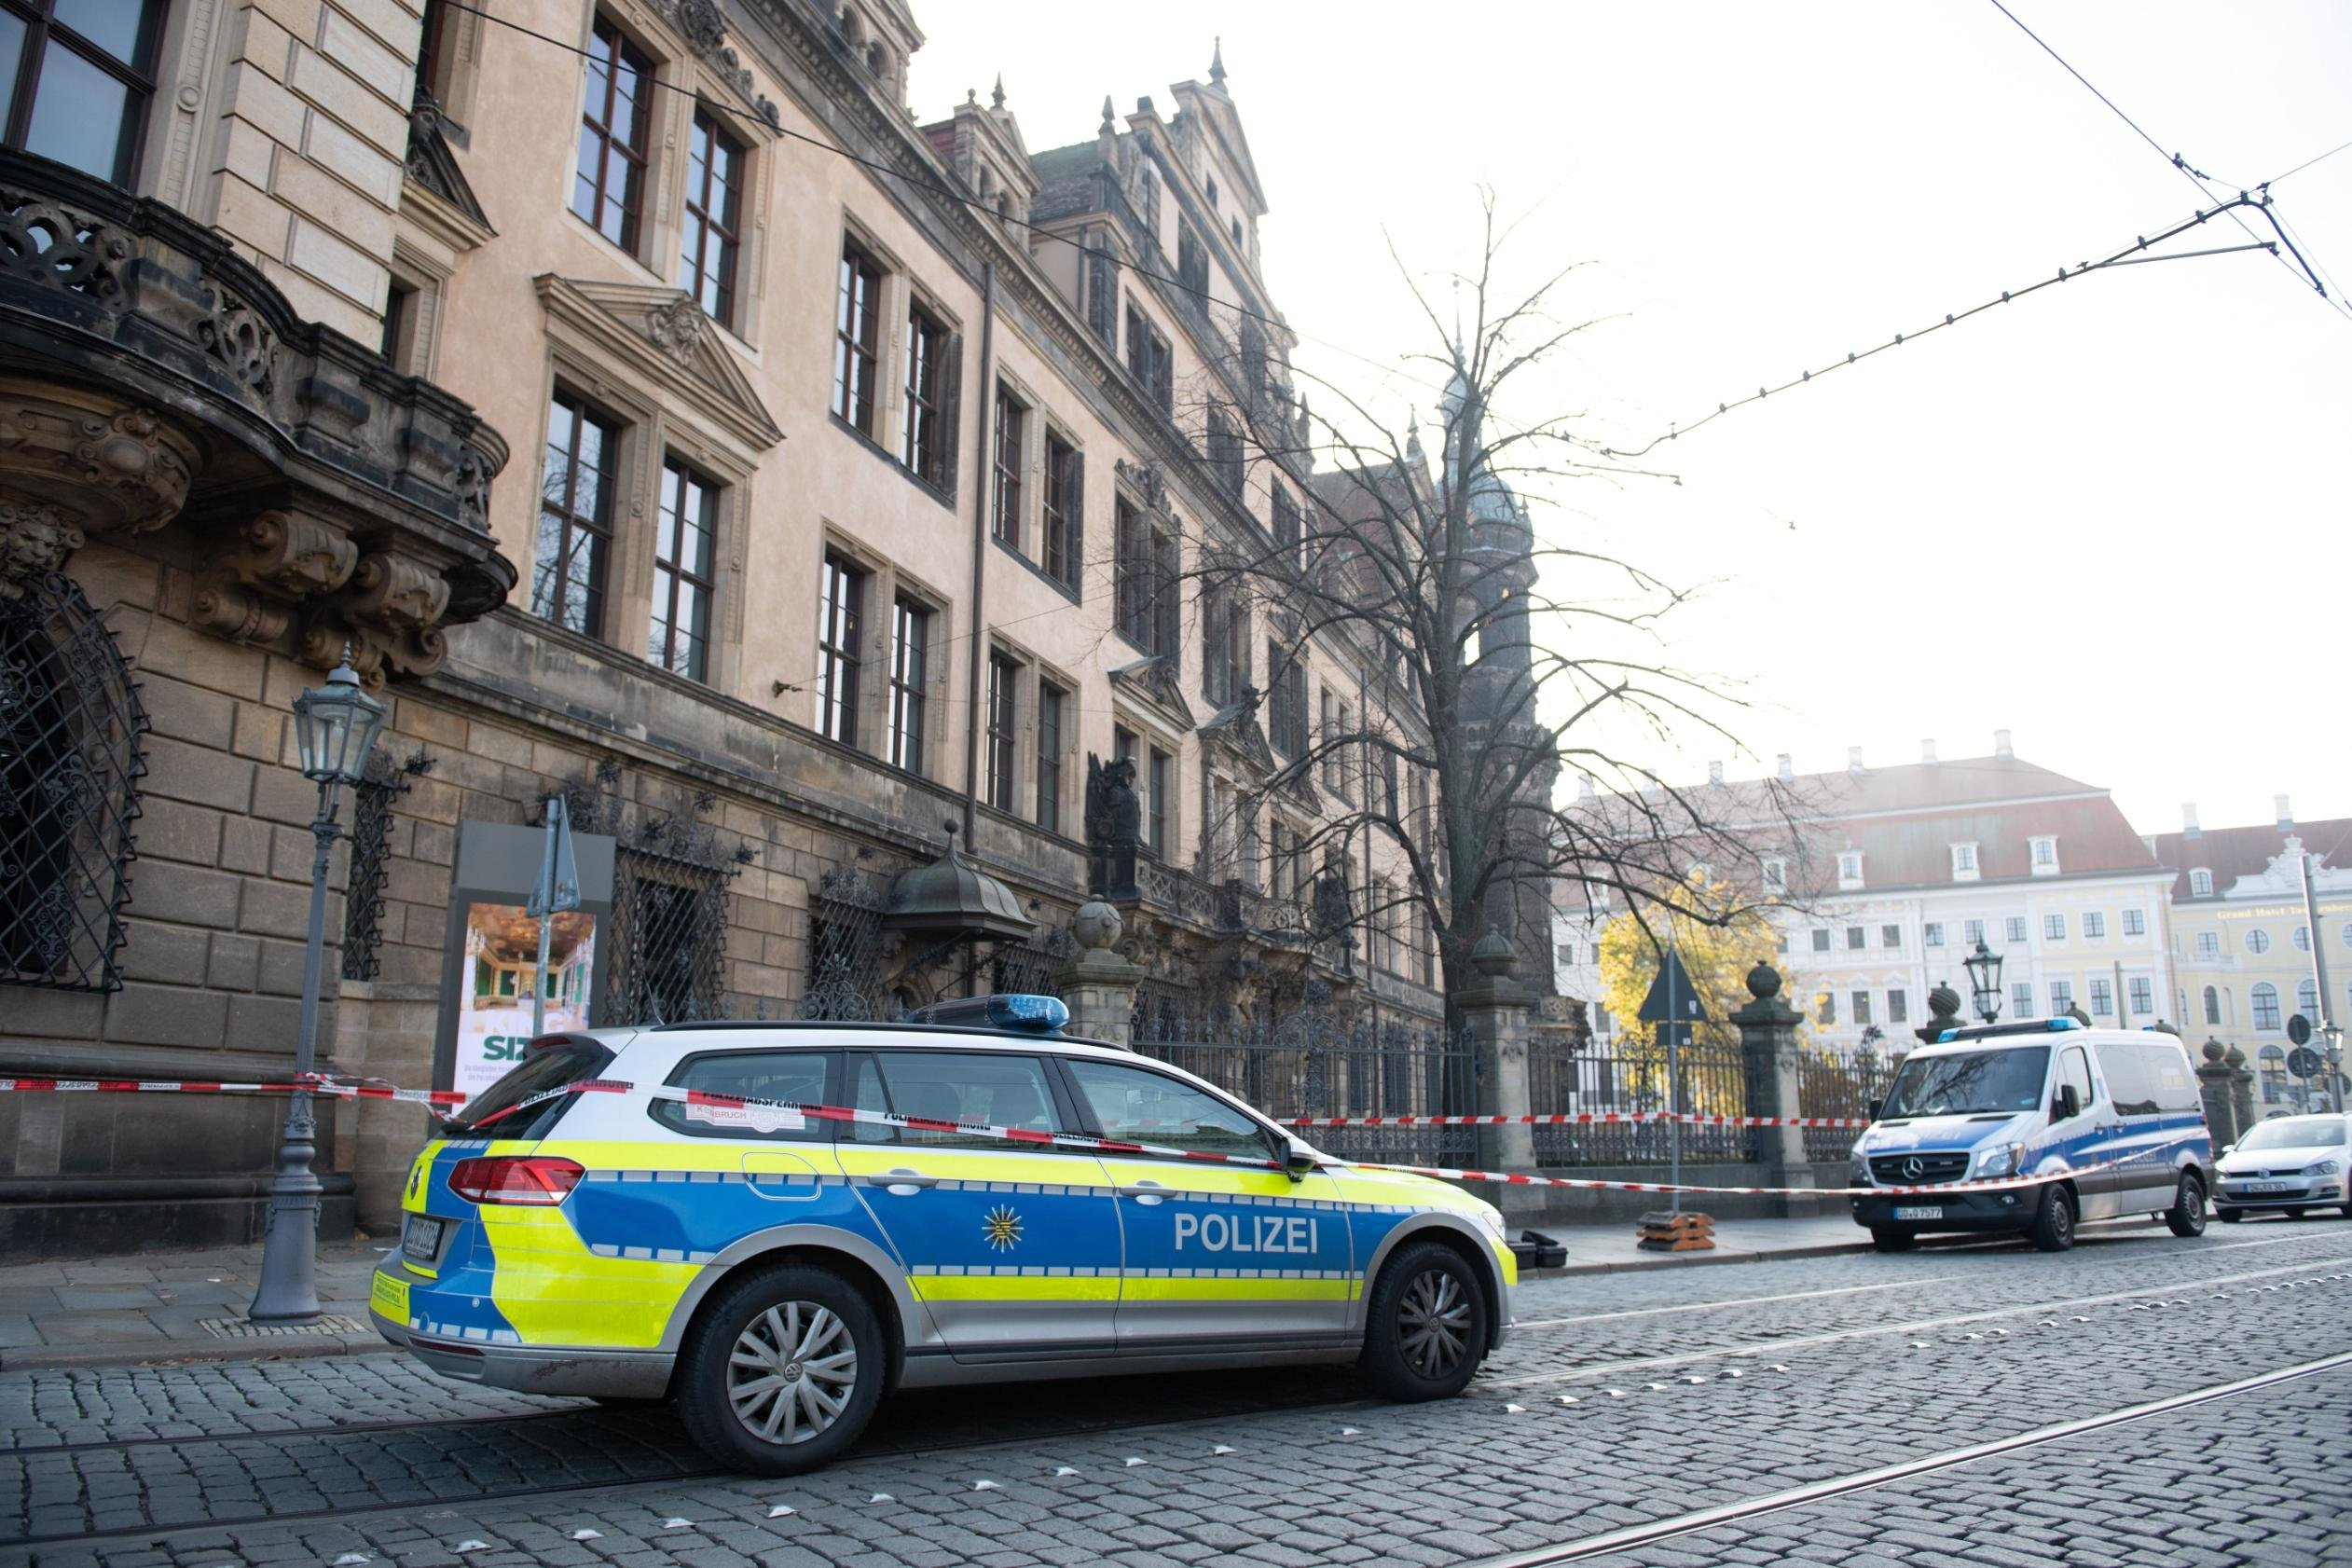 A police car is seen in front of the Royal Palace that houses the historic Green Vault in Dresden.